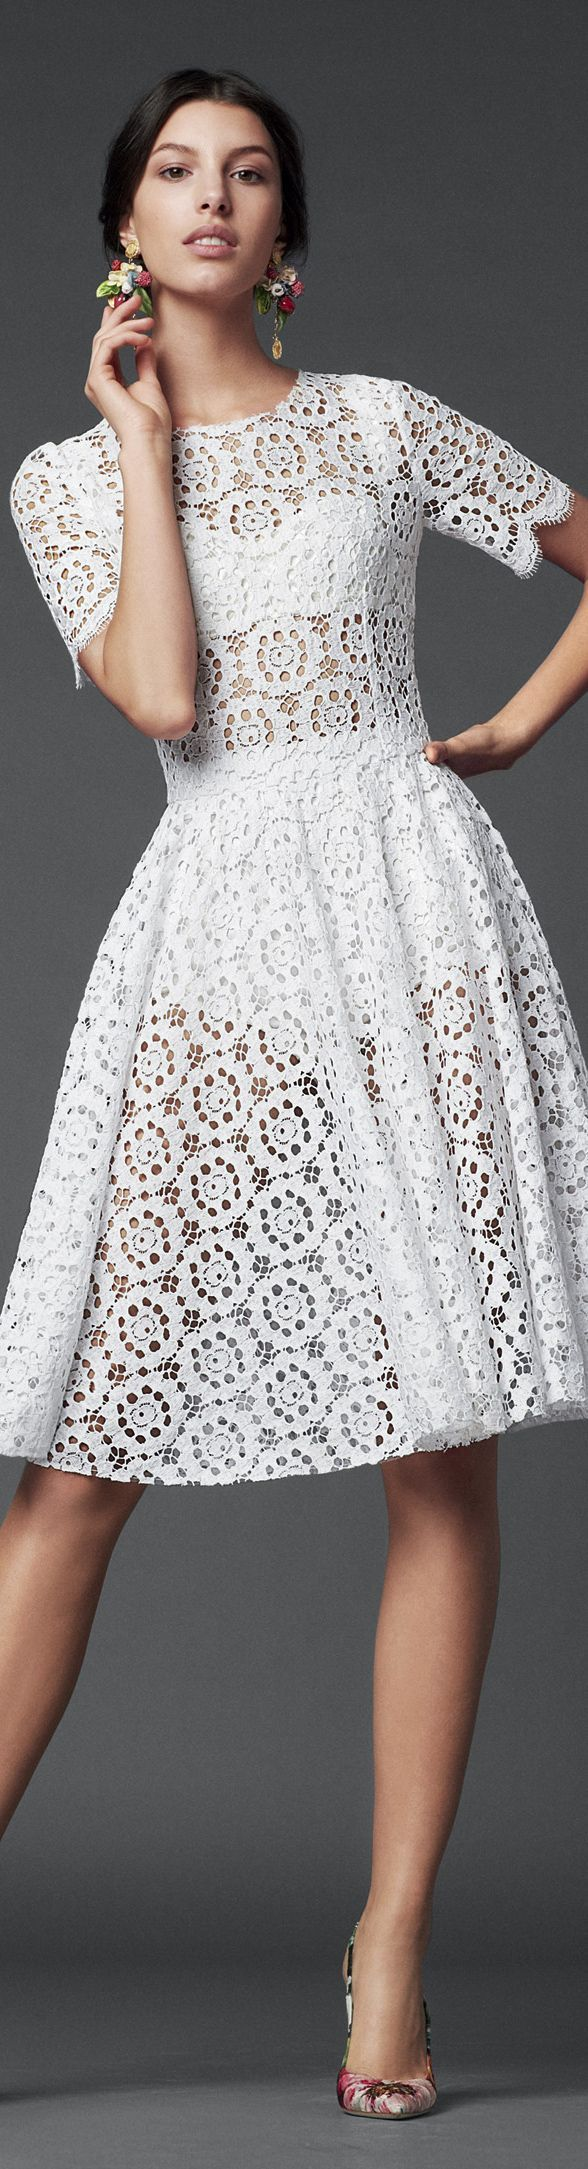 Oscar de la Renta Spring 2014 http://sulia.com/channel/fashion/f/36828469-2f61-44b1-8074-d656bd90ed5c/?source=pin&action=share&btn=small&form_factor=desktop&pinner=125430493